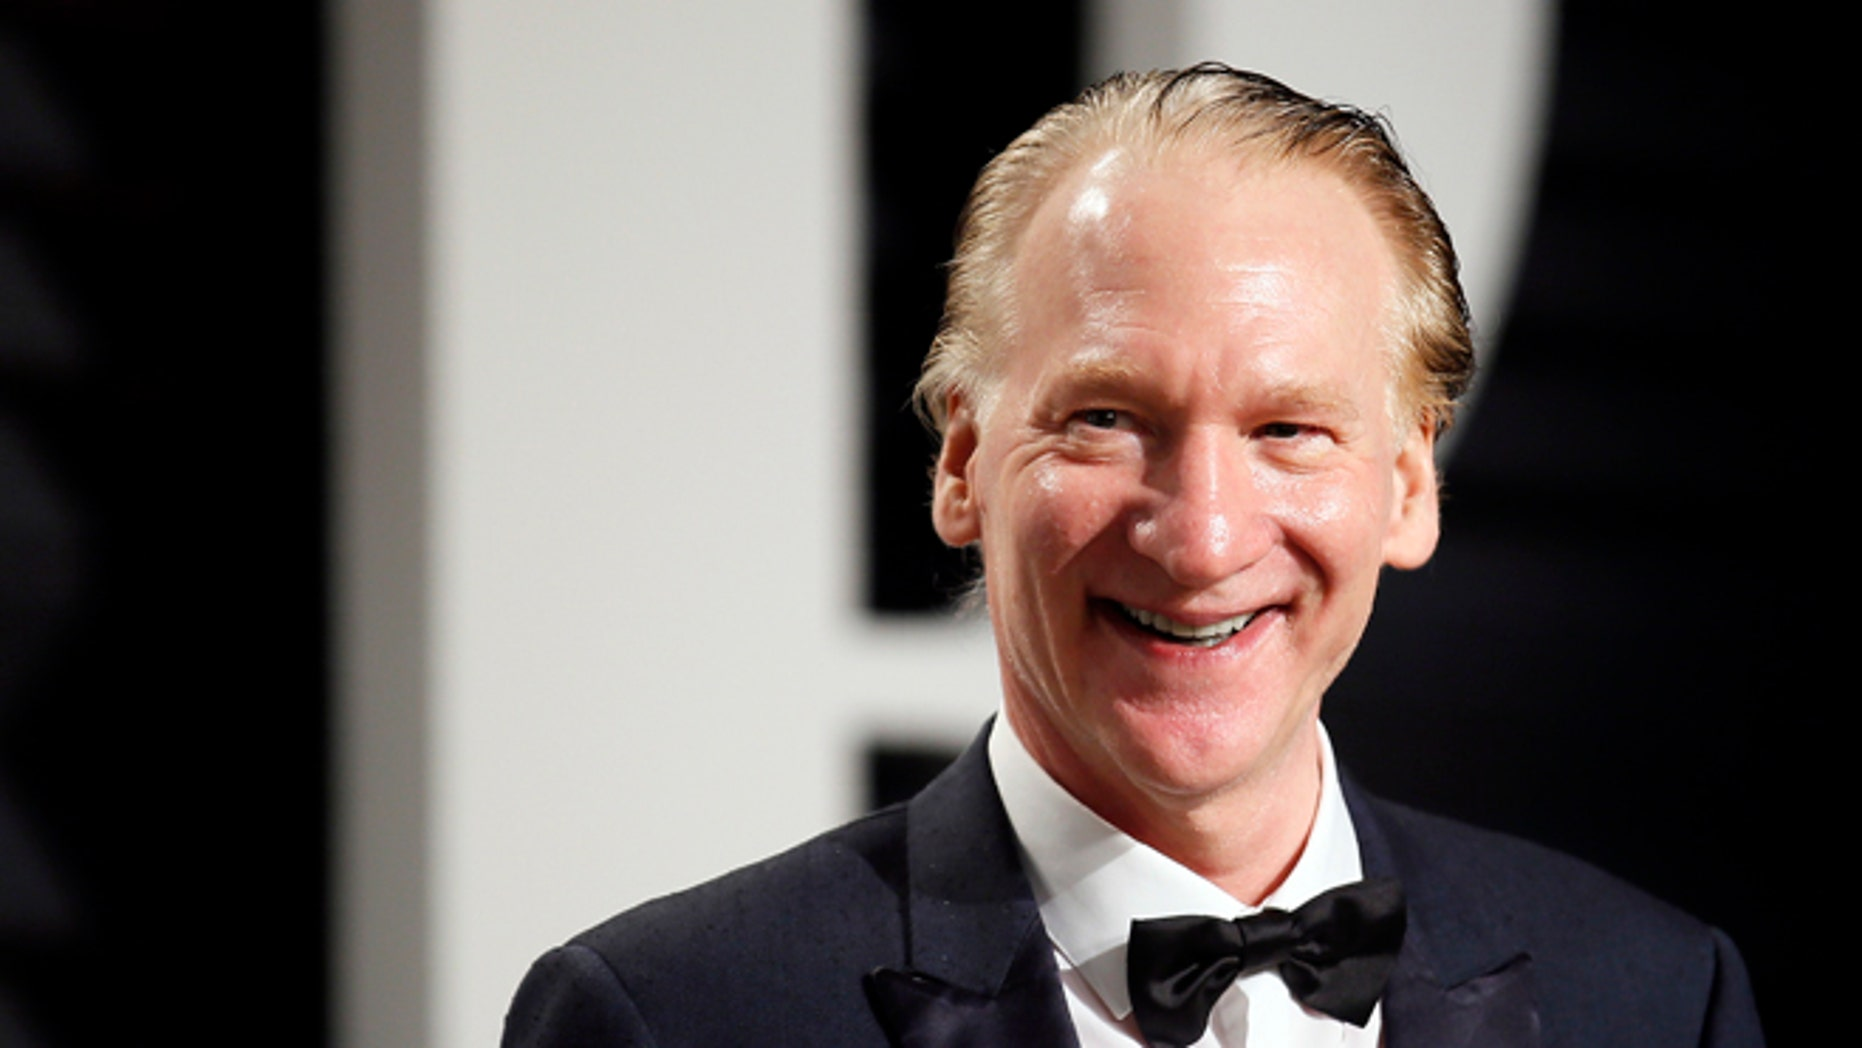 HBO's Bill Maher donated $1 million to the Senate Majority PAC, according to The Hollywood Reporter.